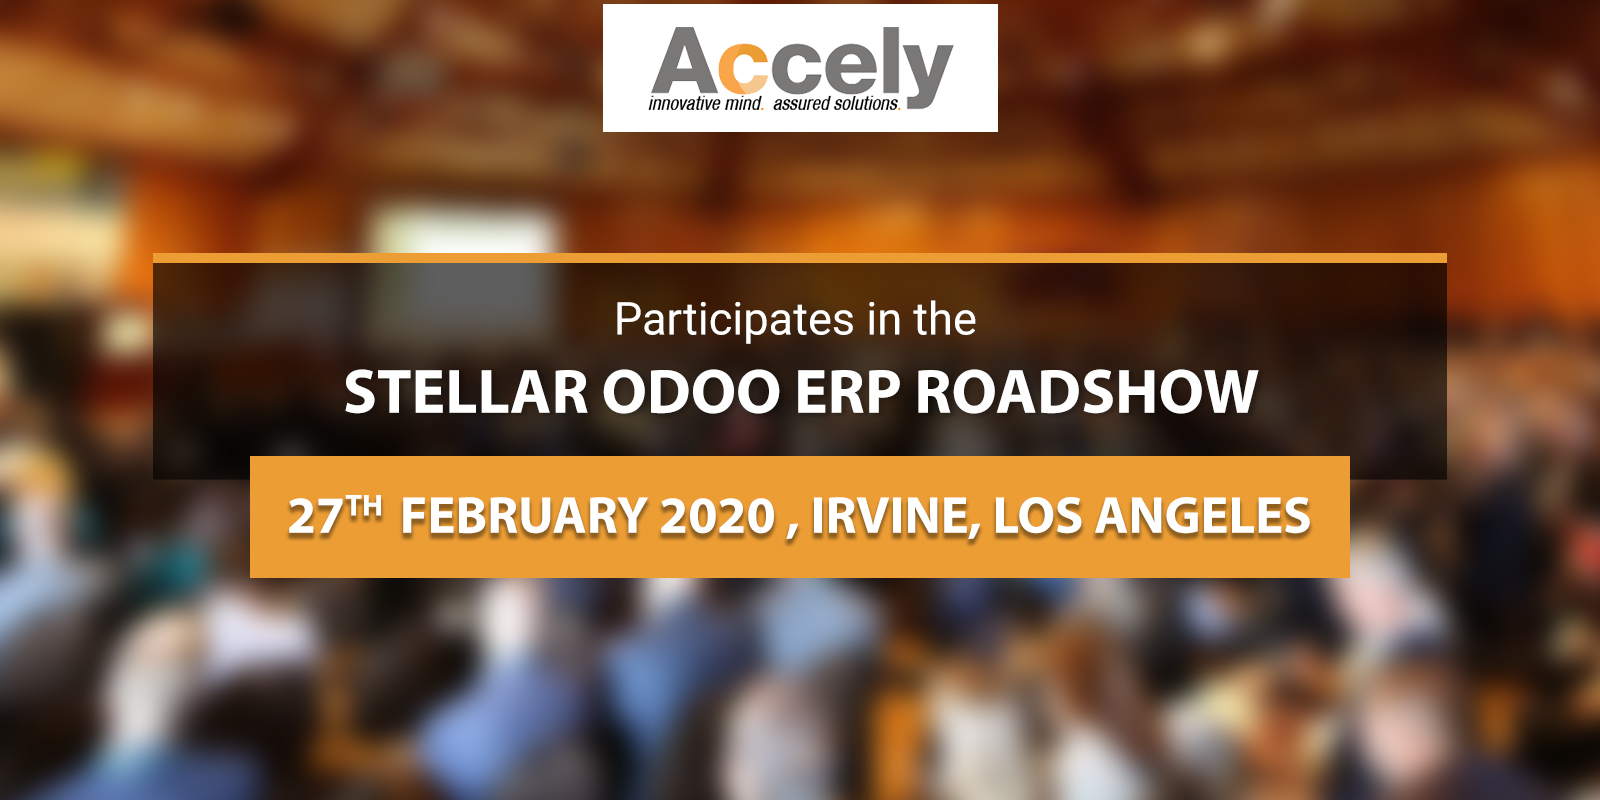 Accely Attended a Stellar Odoo ERP Roadshow